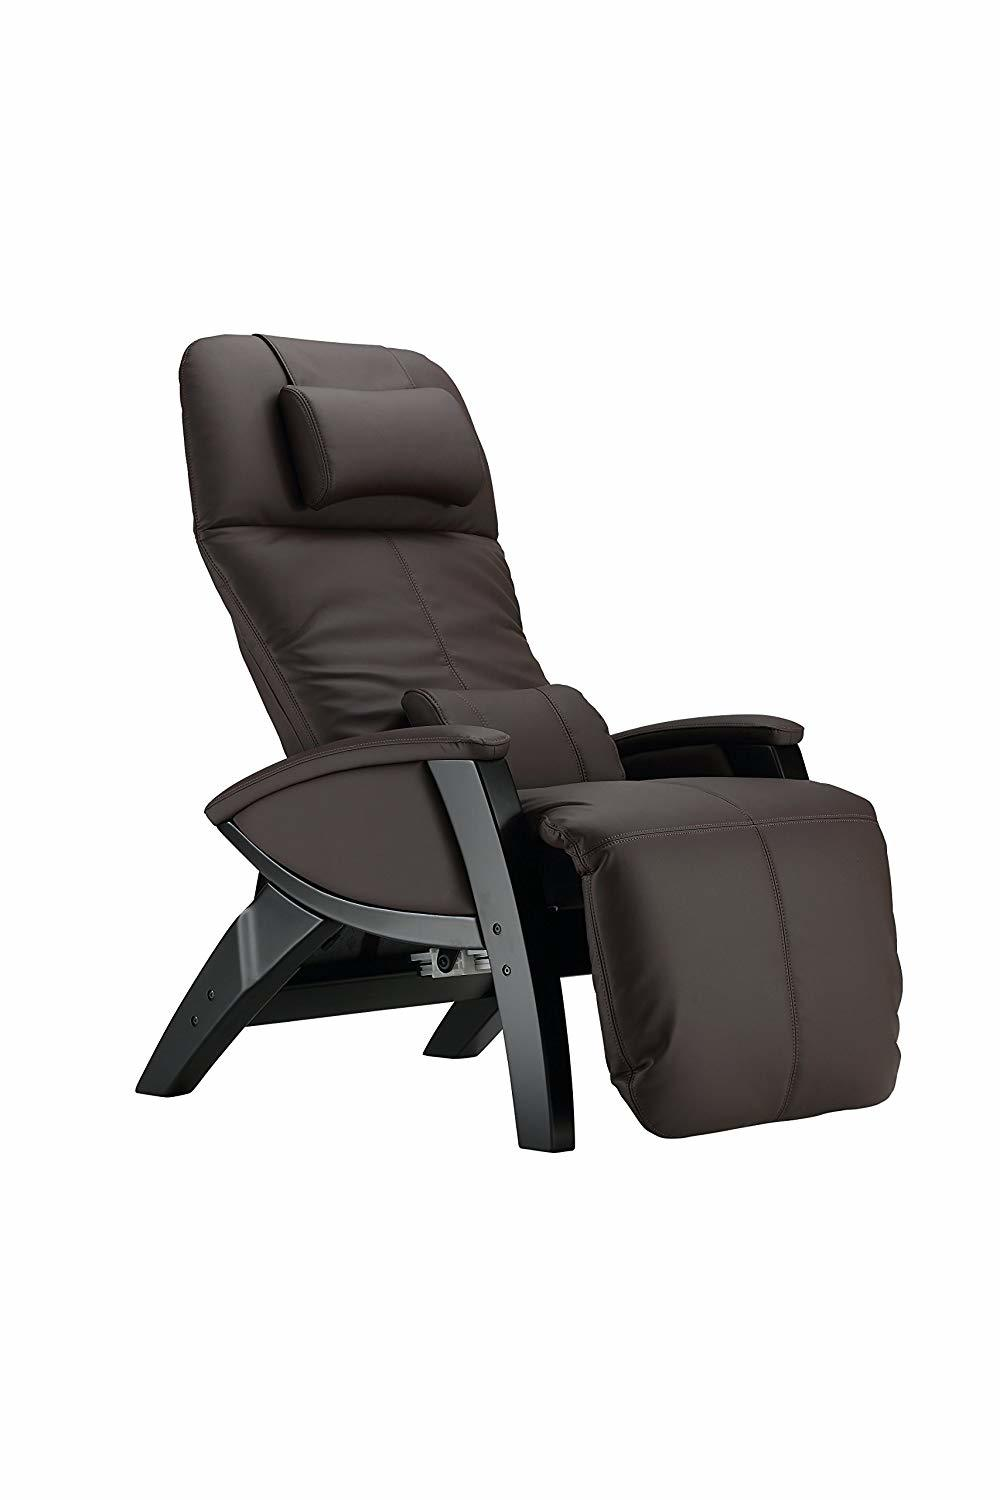 Double Wide Recliner Chair Best Recliners Reviews And Comparisons Cuddly Home Advisors